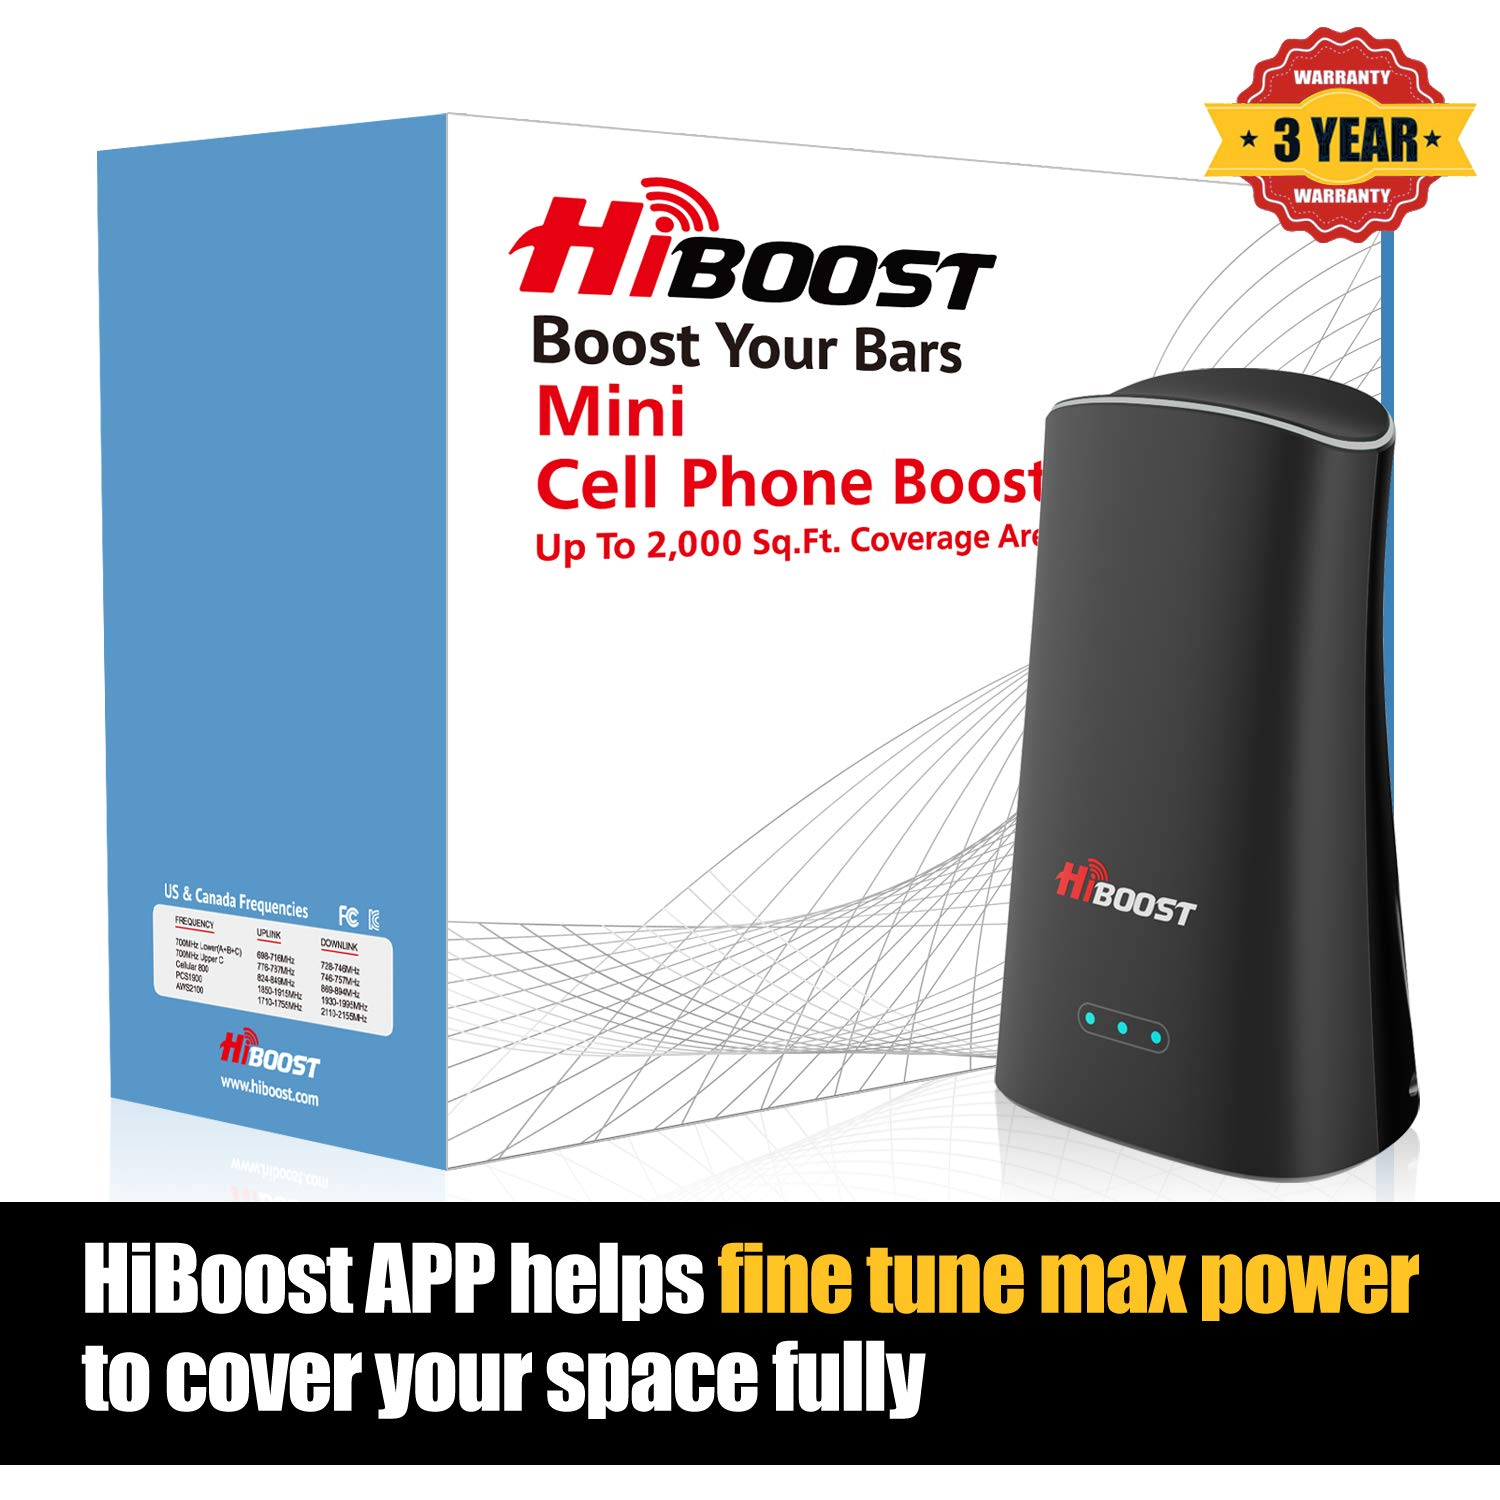 HiBoost Mini Cell Phone Signal Booster Cellular Booster Signal Amplifier for Home Office up to 2,000 Sq.Ft by HiBoost